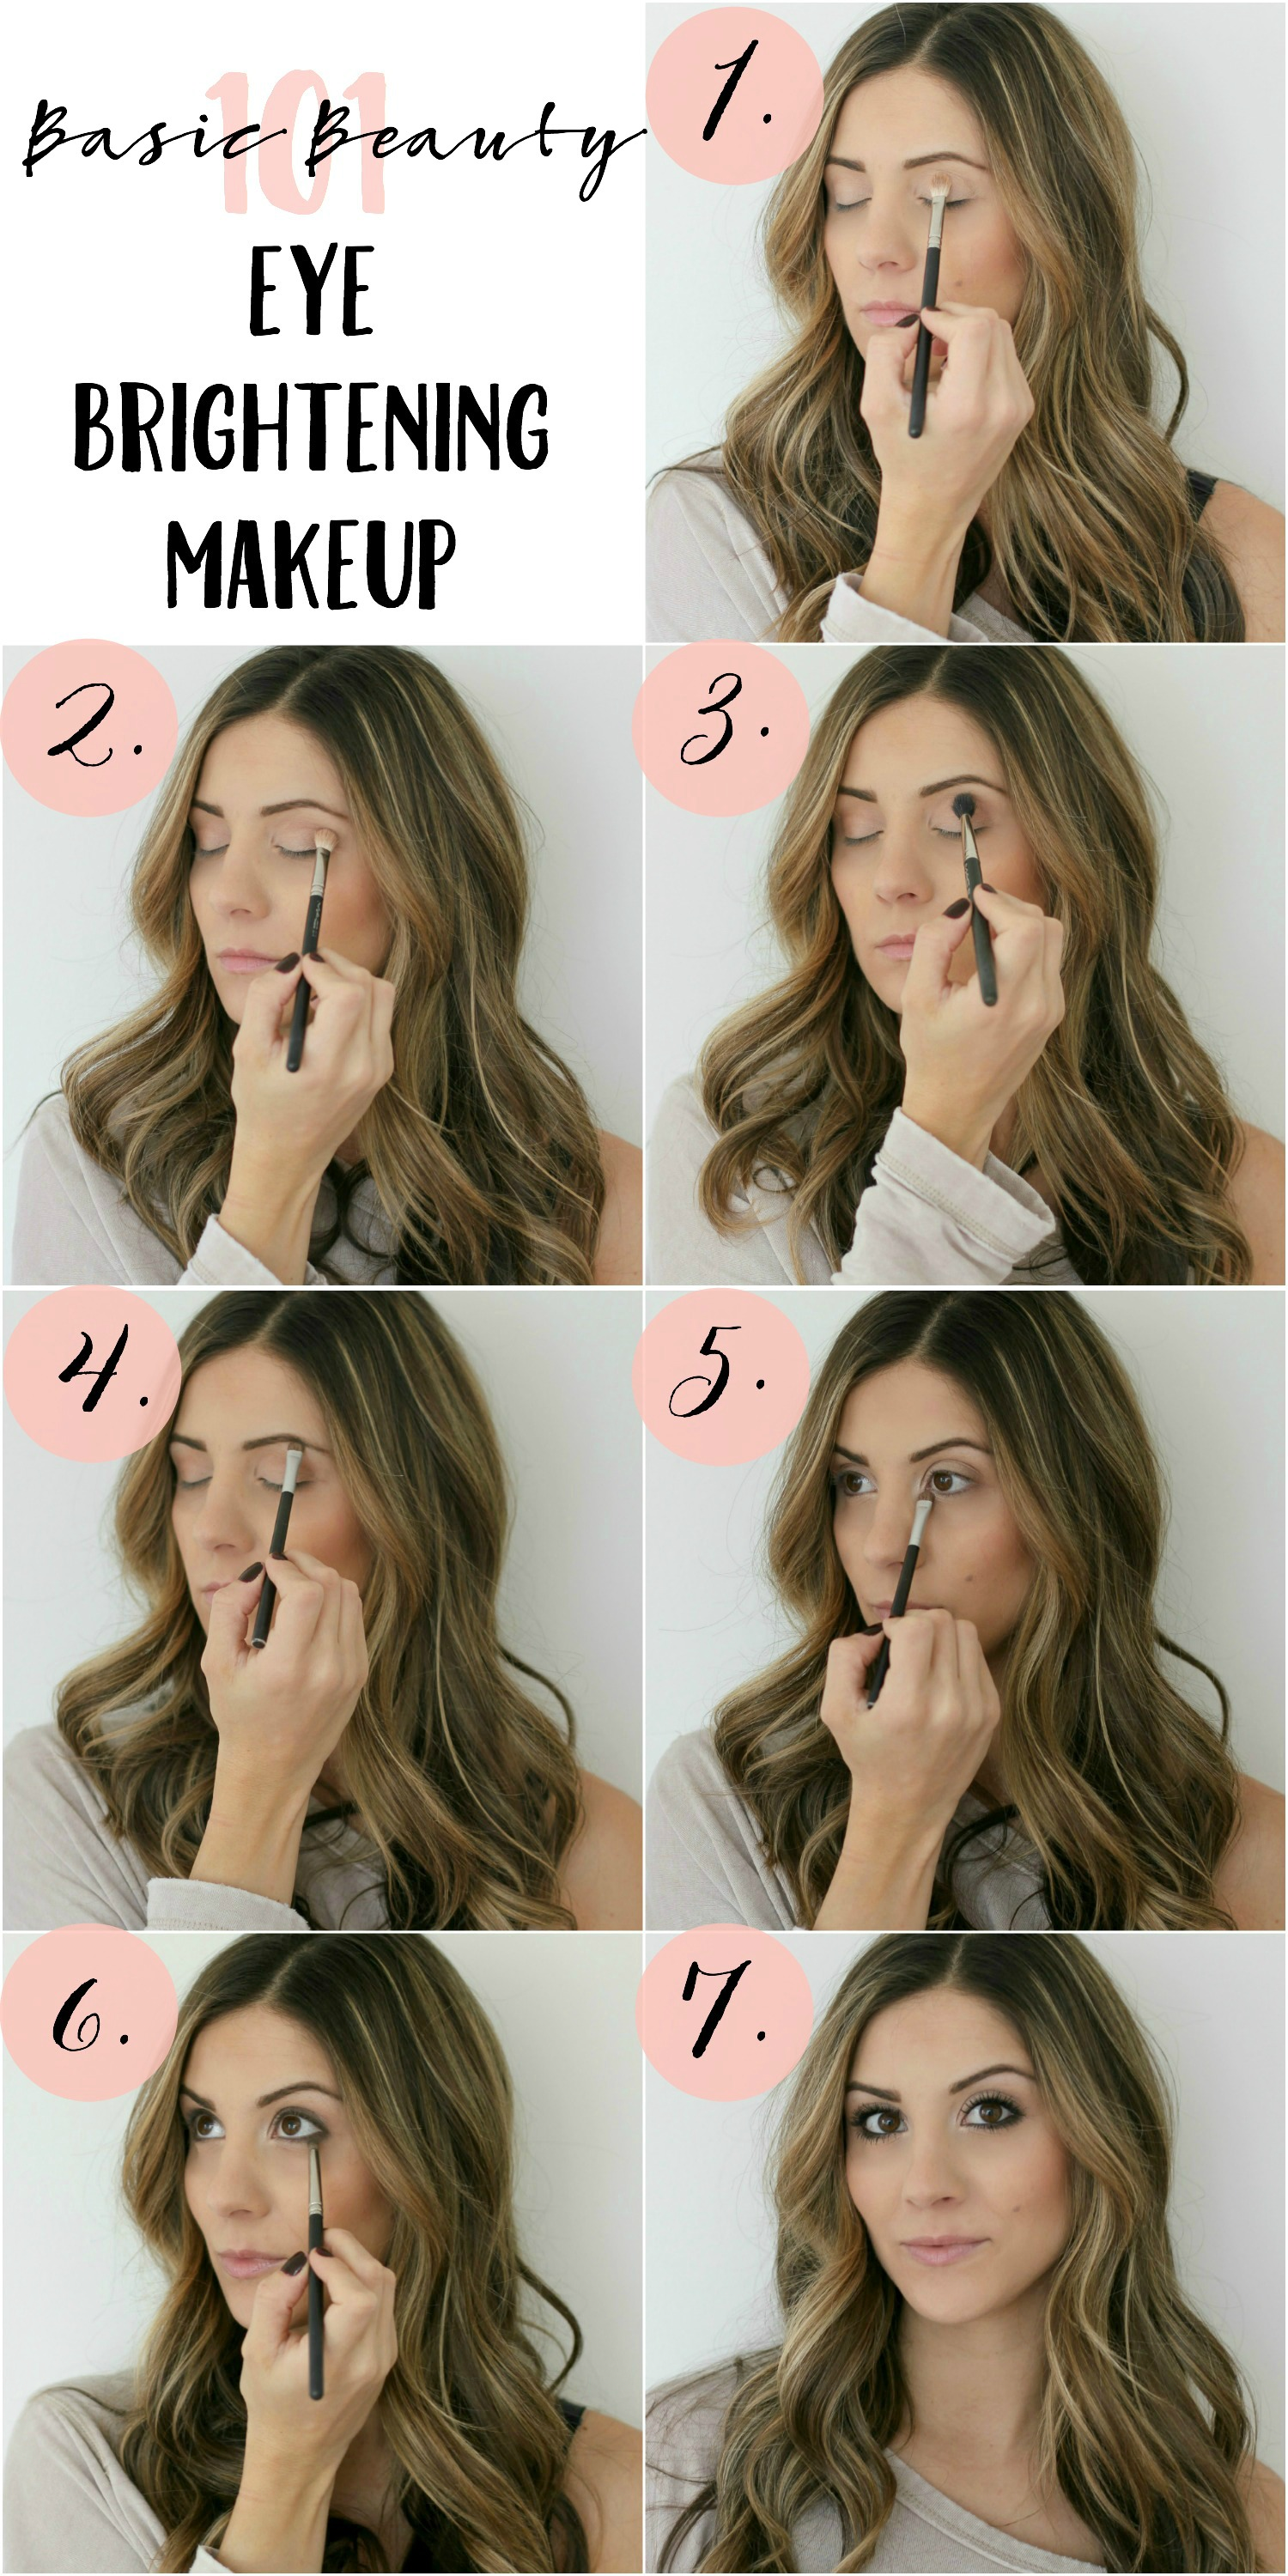 Eye Brightening Makeup Tutorial - Lauren McBride